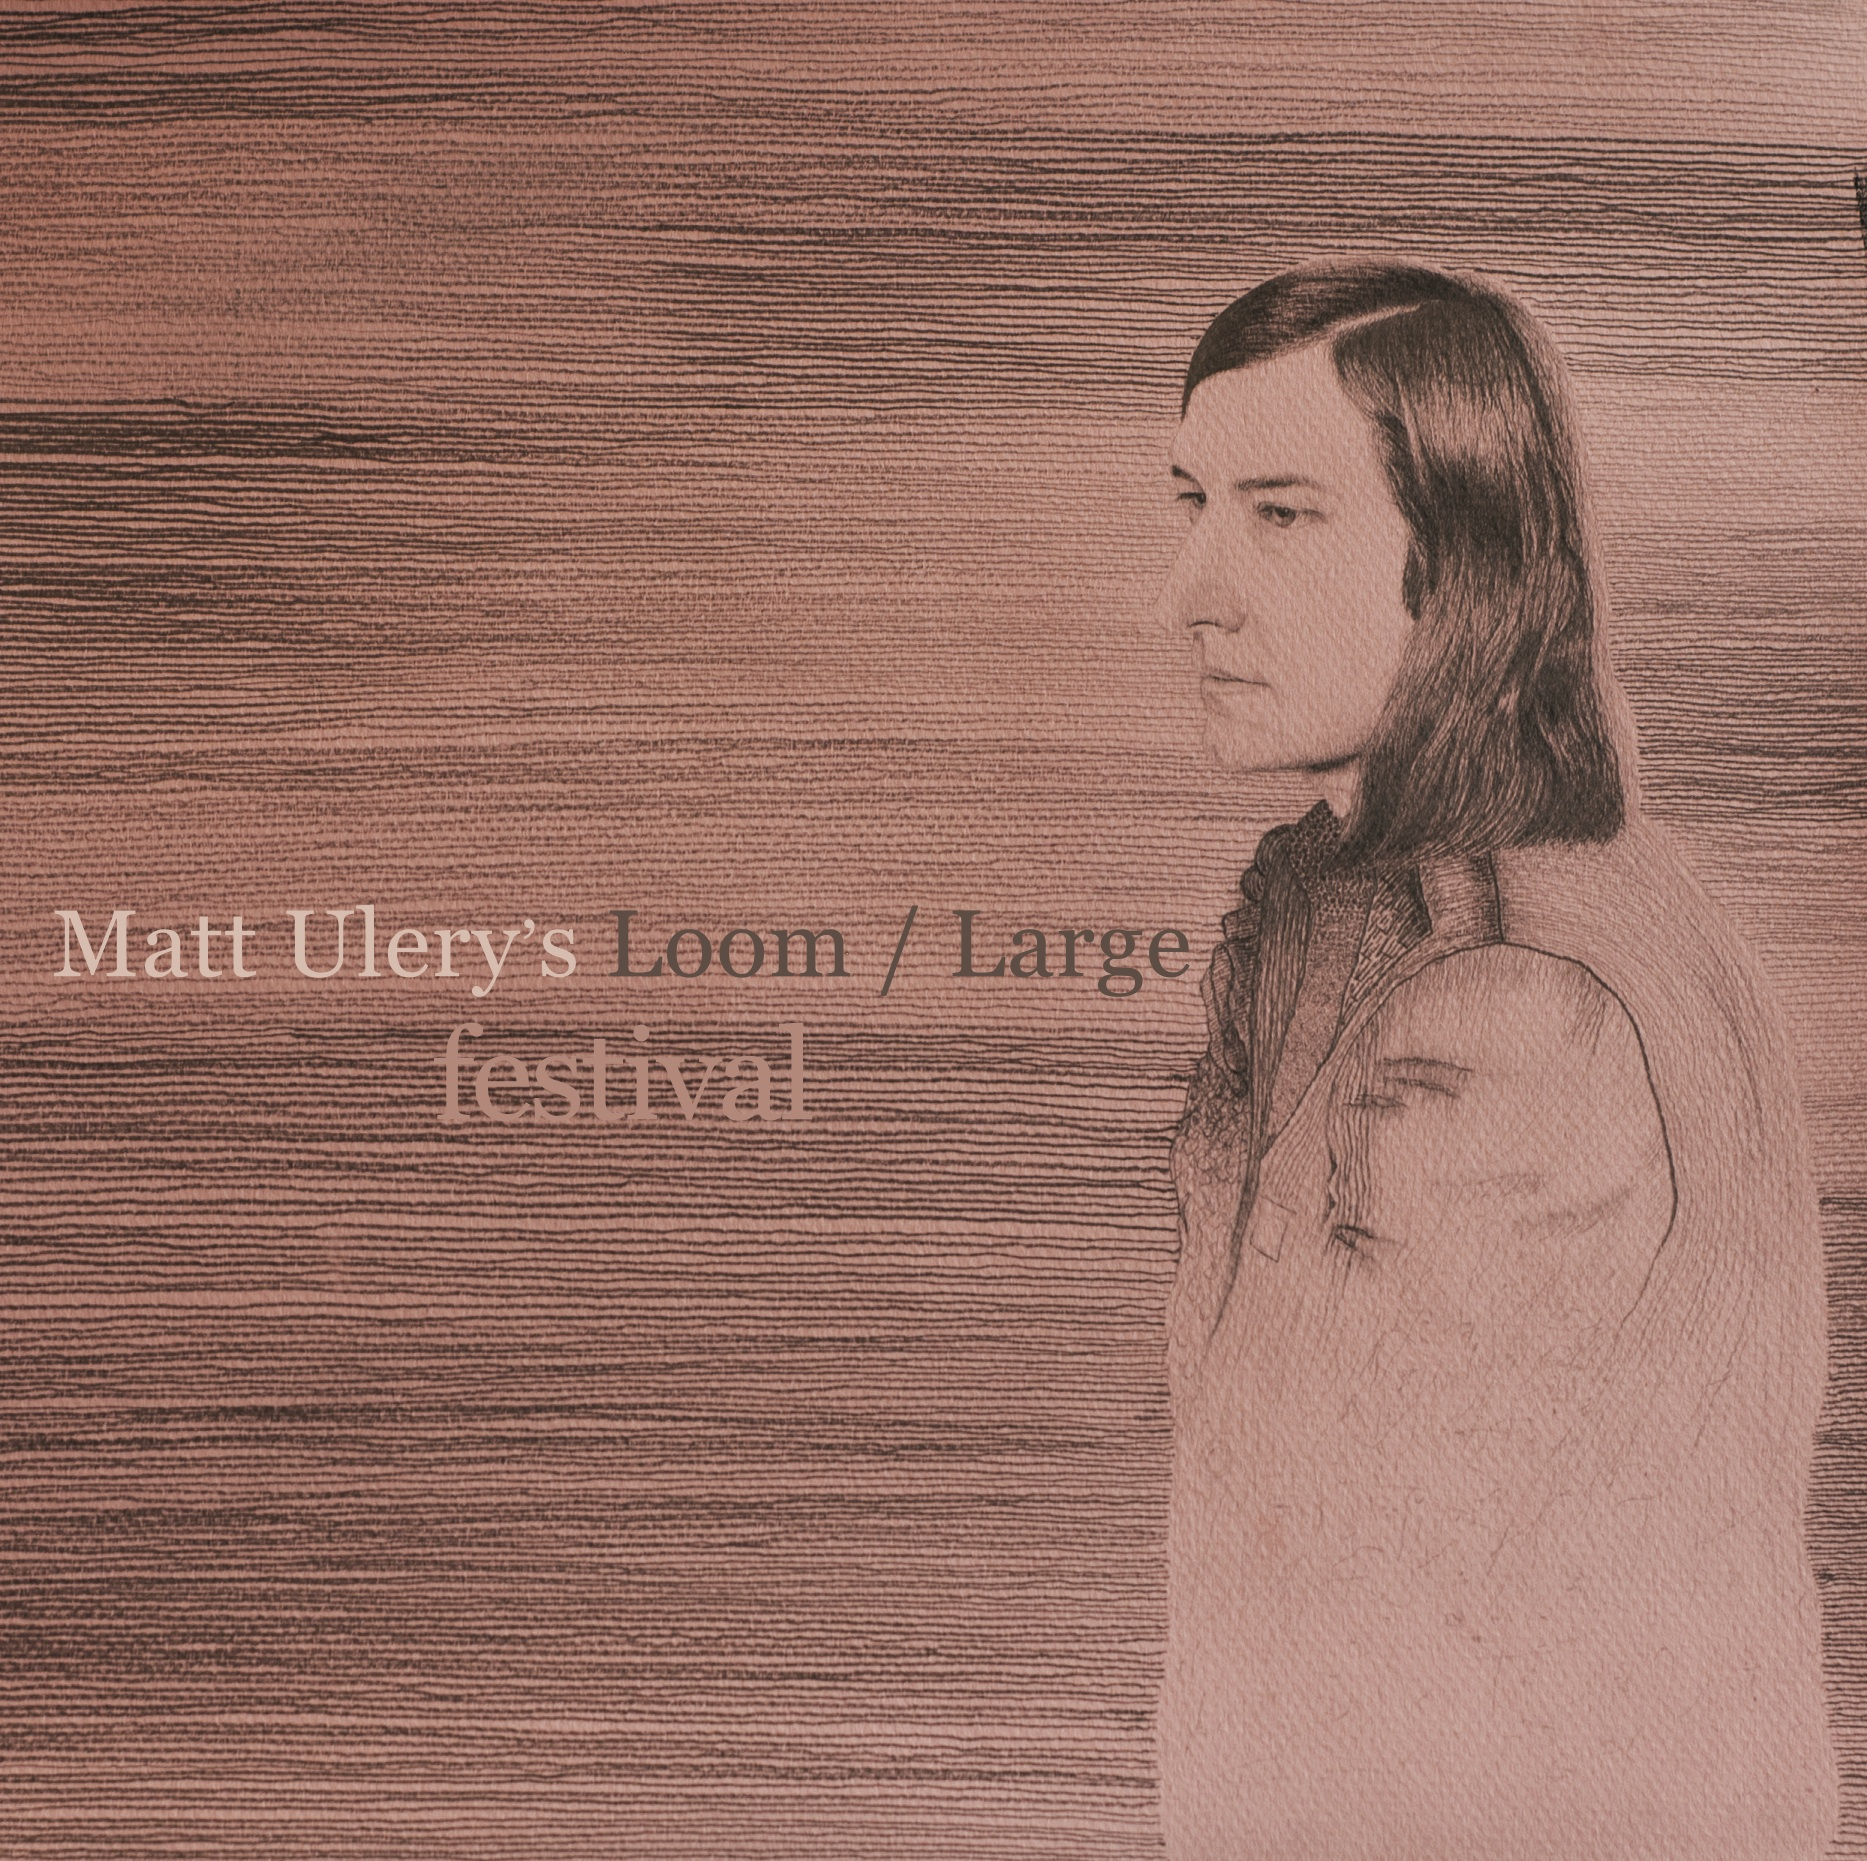 Matt Ulery's 'Festival' Chosen as a 'Best Of October' for Bandcamp Daily